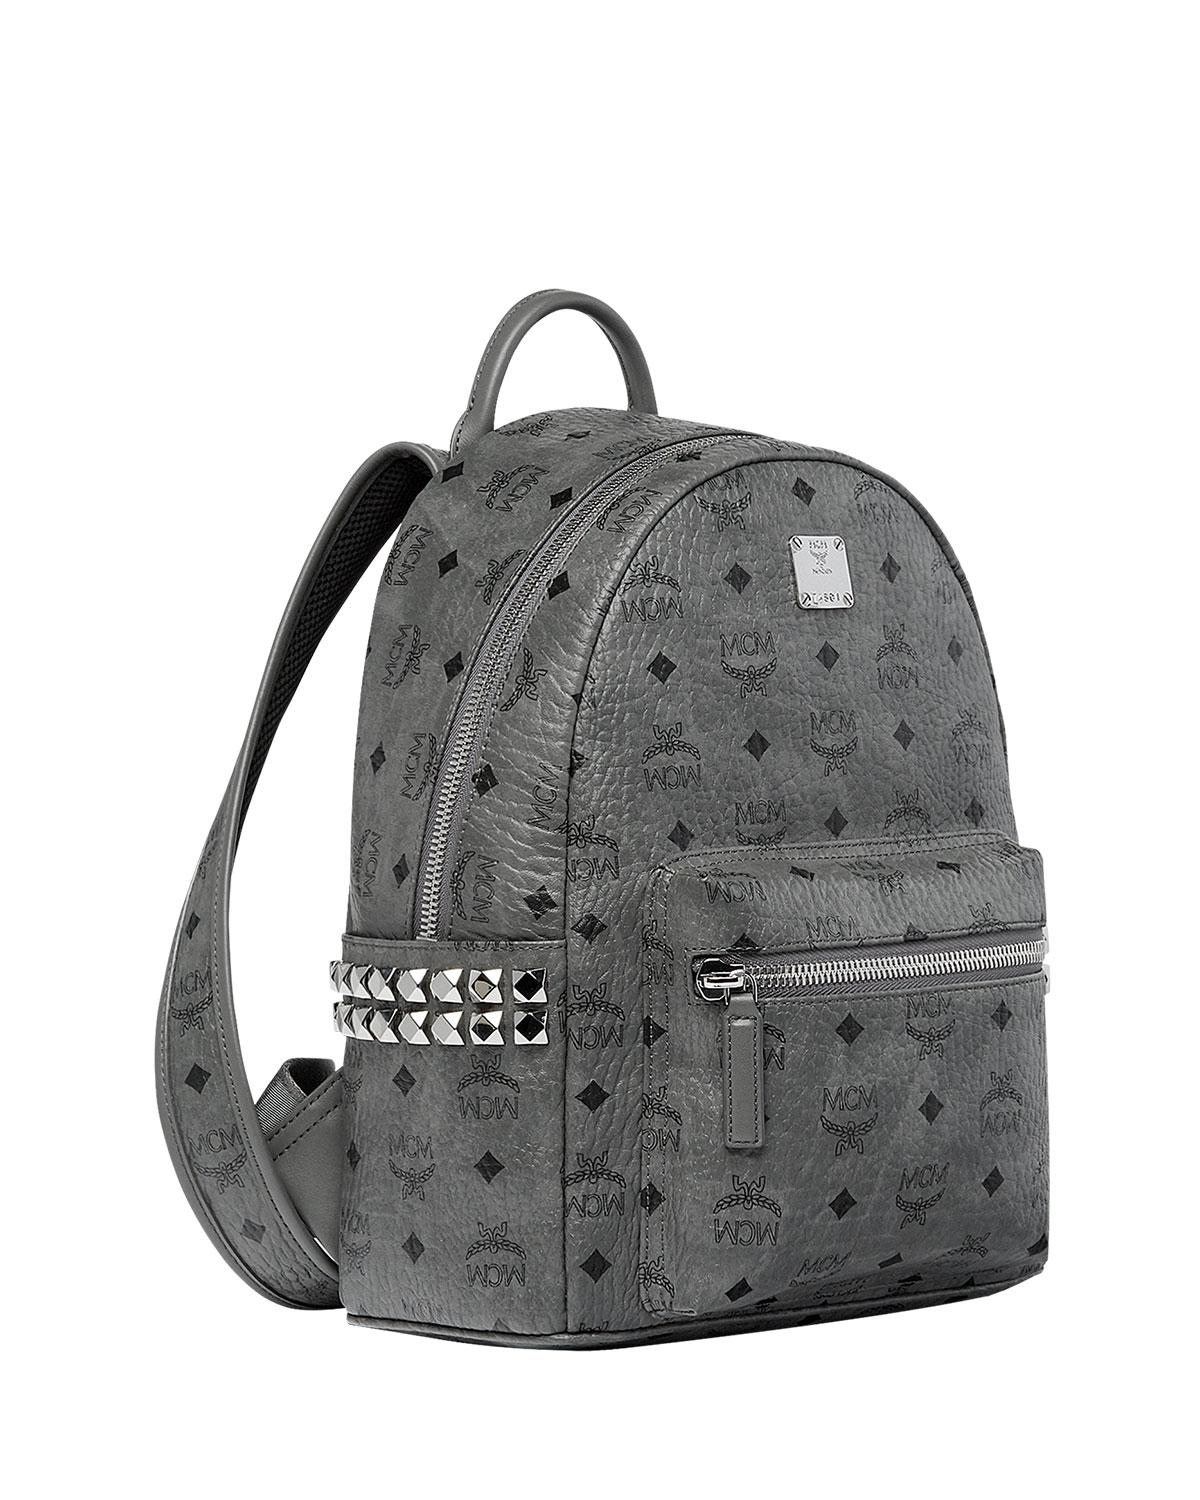 4c5d24450cb76 MCM Stark Medium Stud Faux Leather Backpack in Gray for Men - Save 9% - Lyst